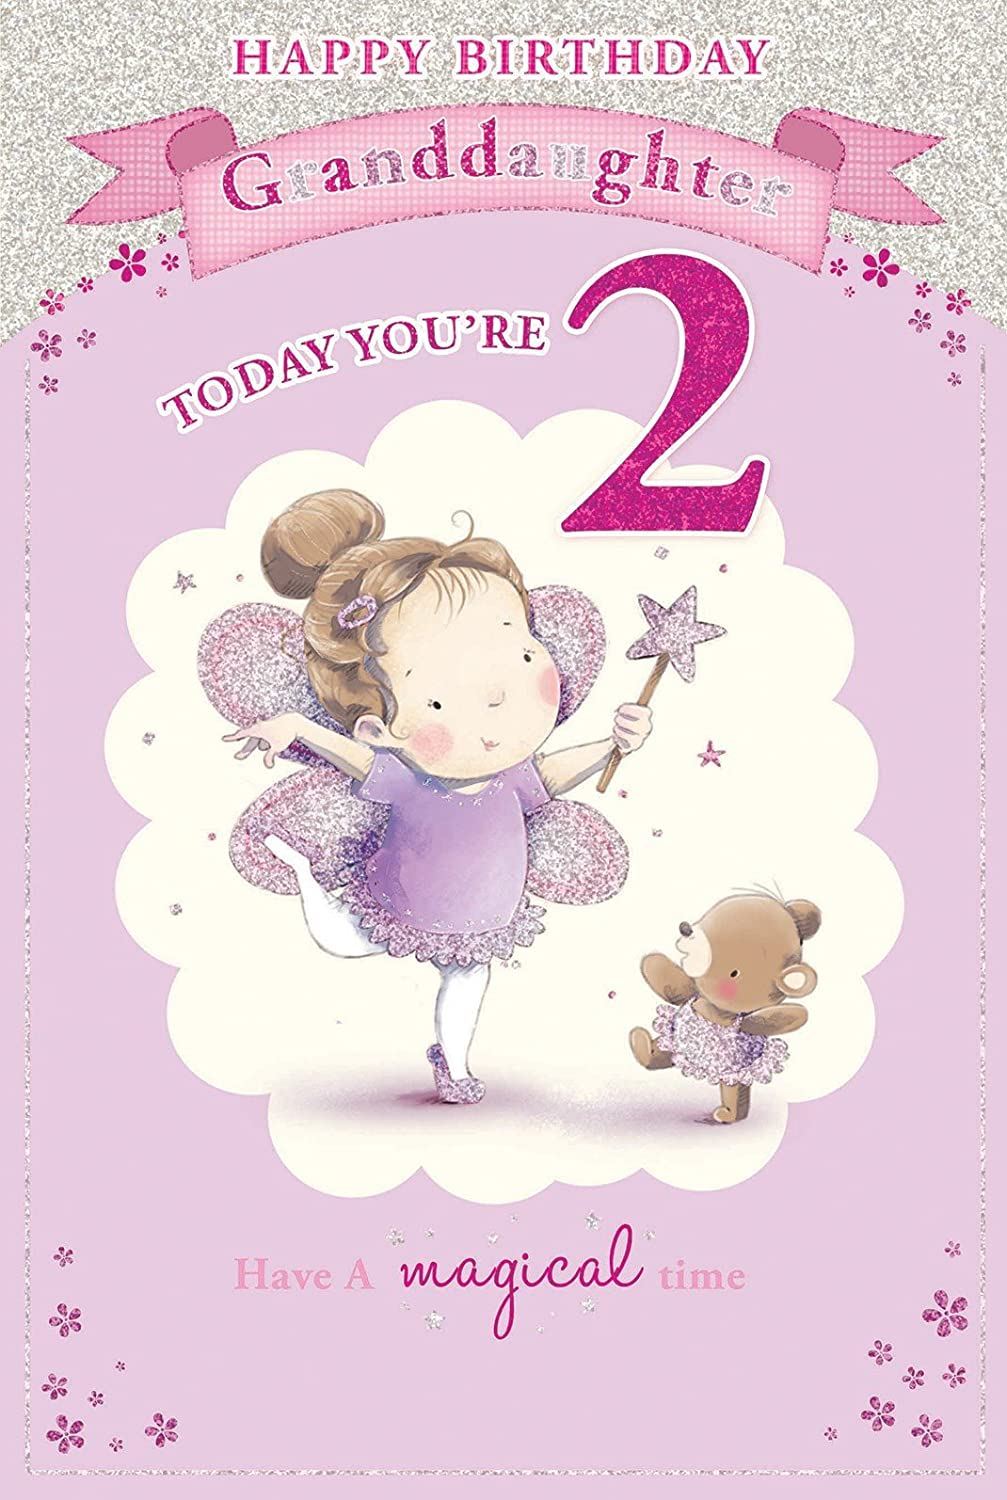 Granddaughters 2nd Birthday Card 2 Today Little Girl Fairy – 2nd Birthday Cards